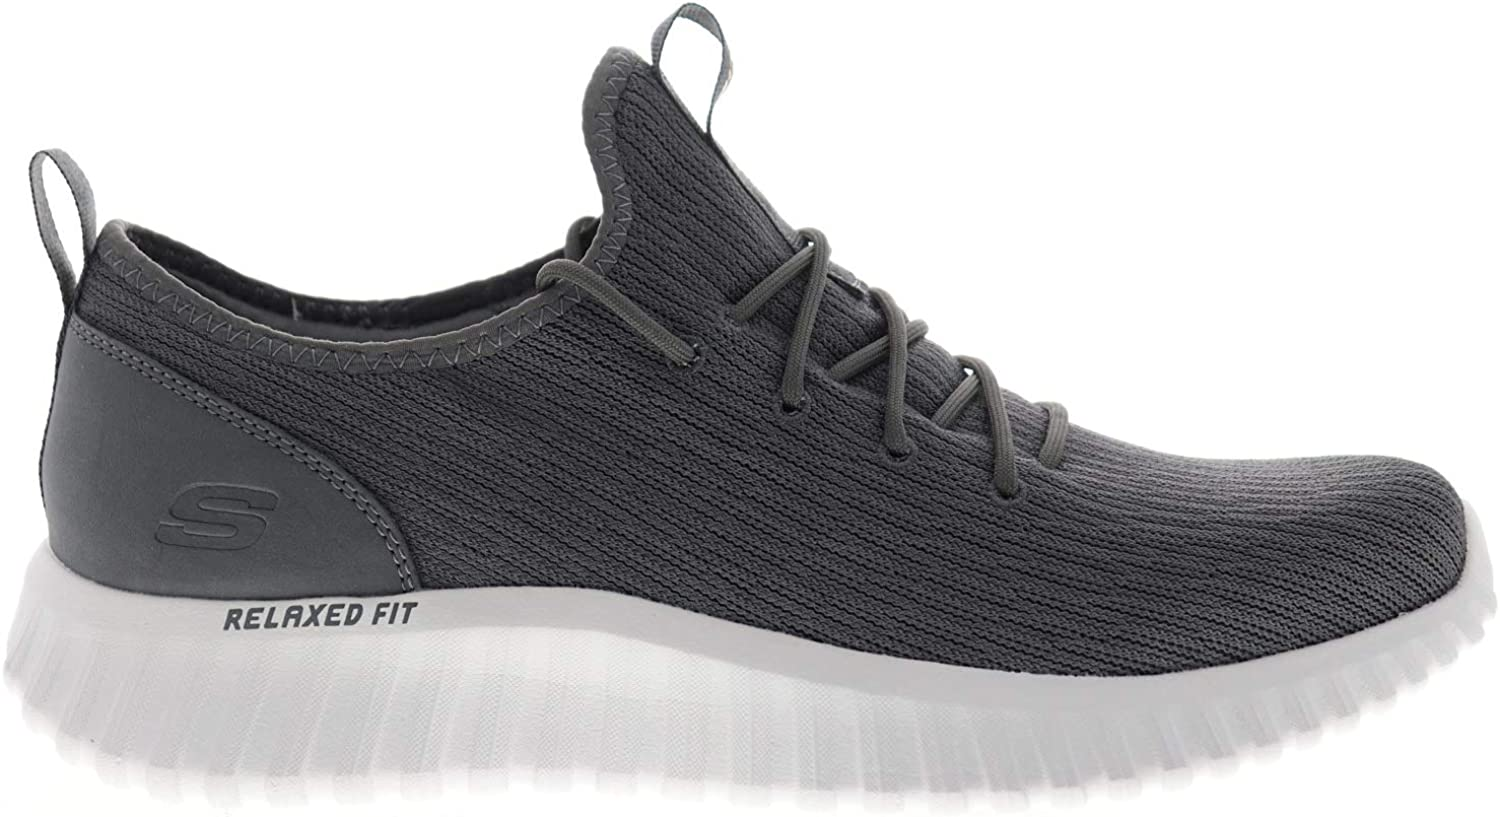 Skechers Deep Charge 2.0 Garnado Lifestyle Performance Zapatillas de moda para hombre, Negro (Carbón), 42.5 EU: Amazon.es: Zapatos y complementos